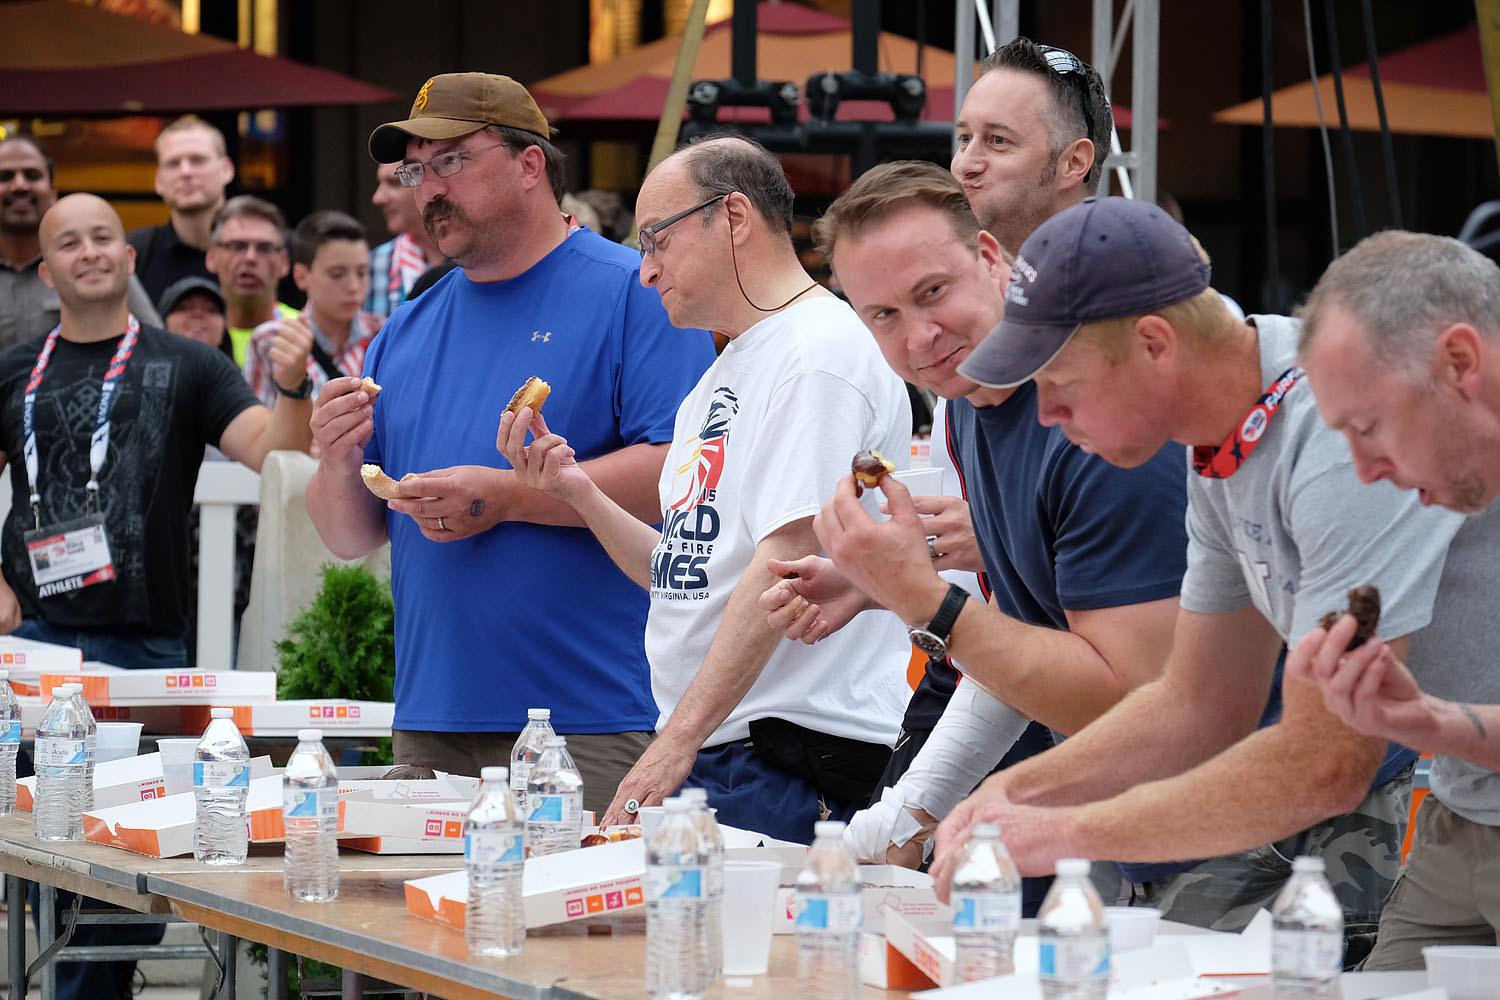 Donut eating contest at the World Police and Fire Games Athlete's Village